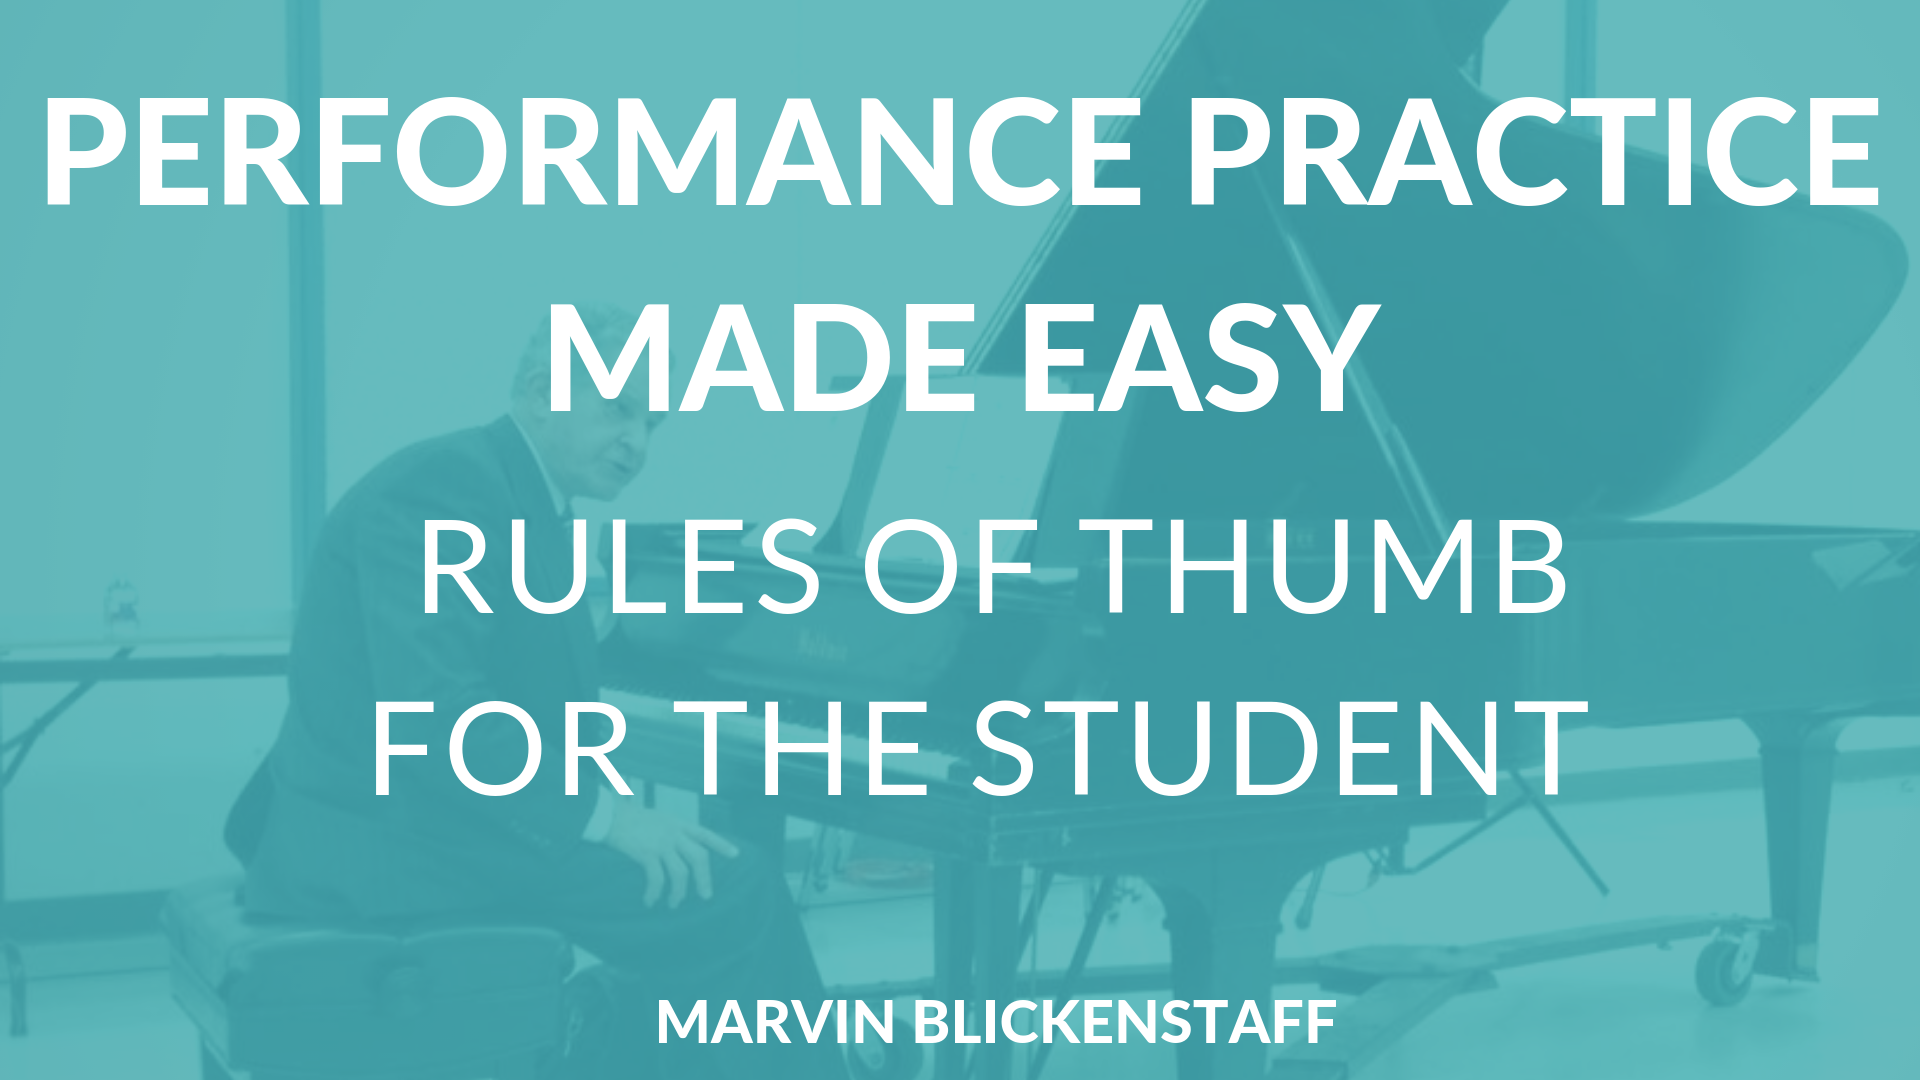 Title card that say Performance Practice Made Easy, Rules of Thumb for the Student. Marvin Blickenstaff is sitting at a piano in the background.